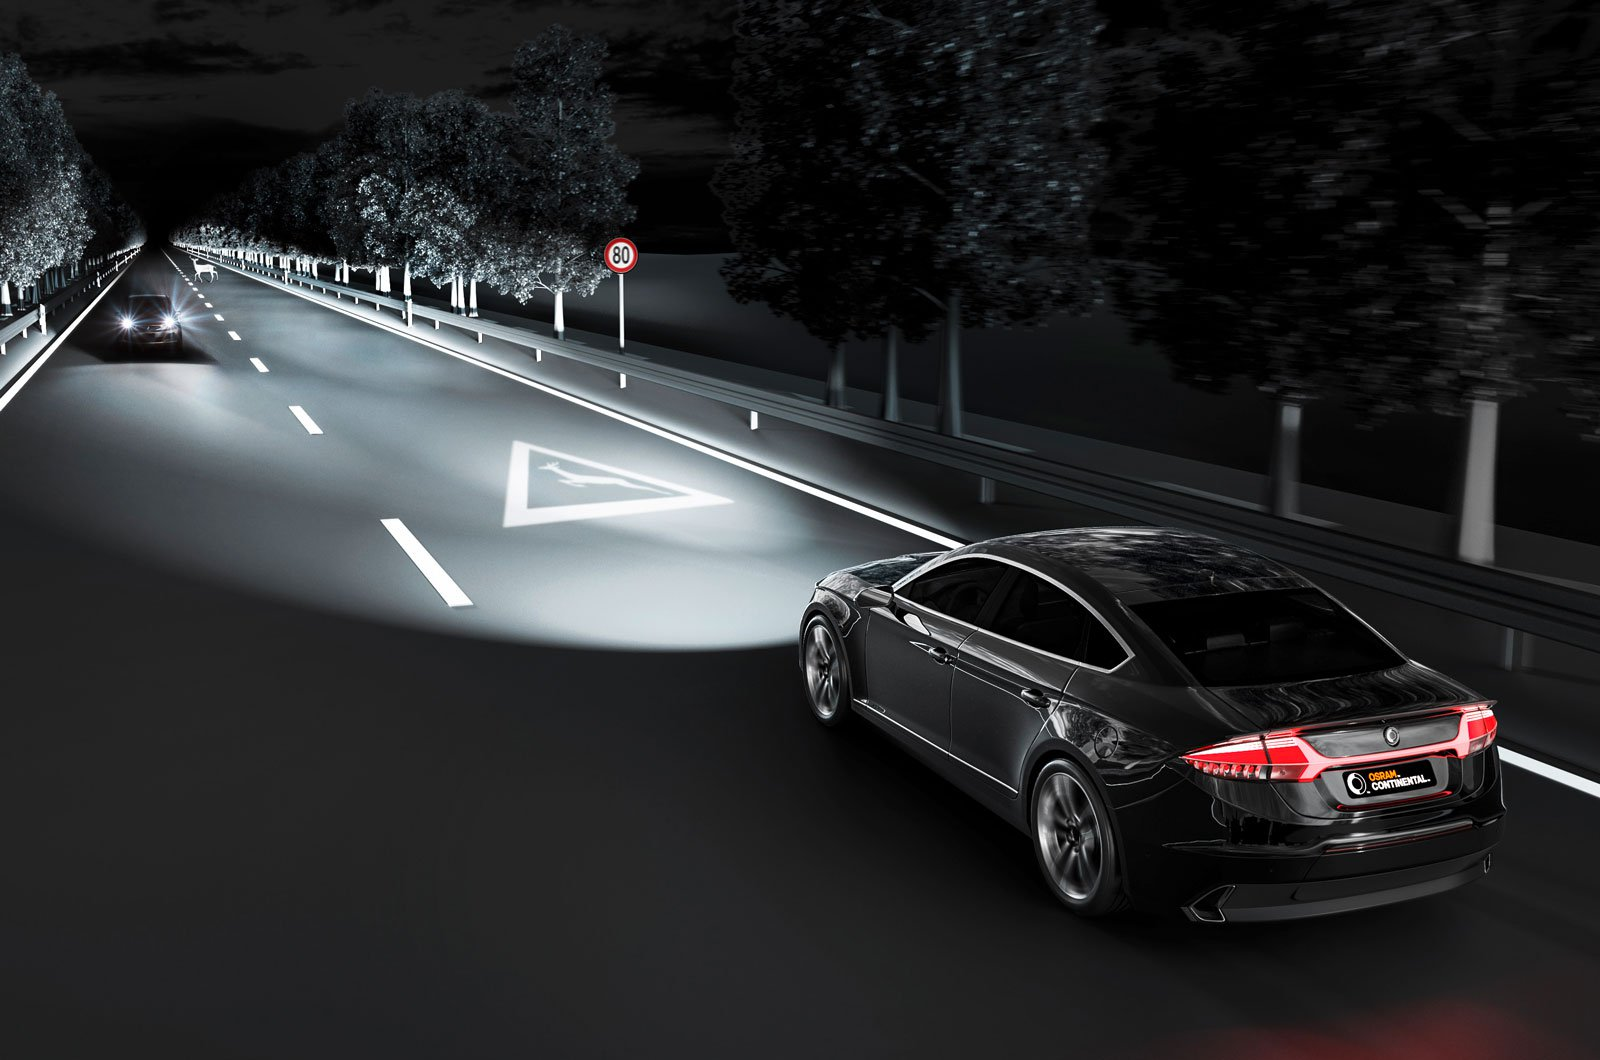 Intelligent future headlights at night